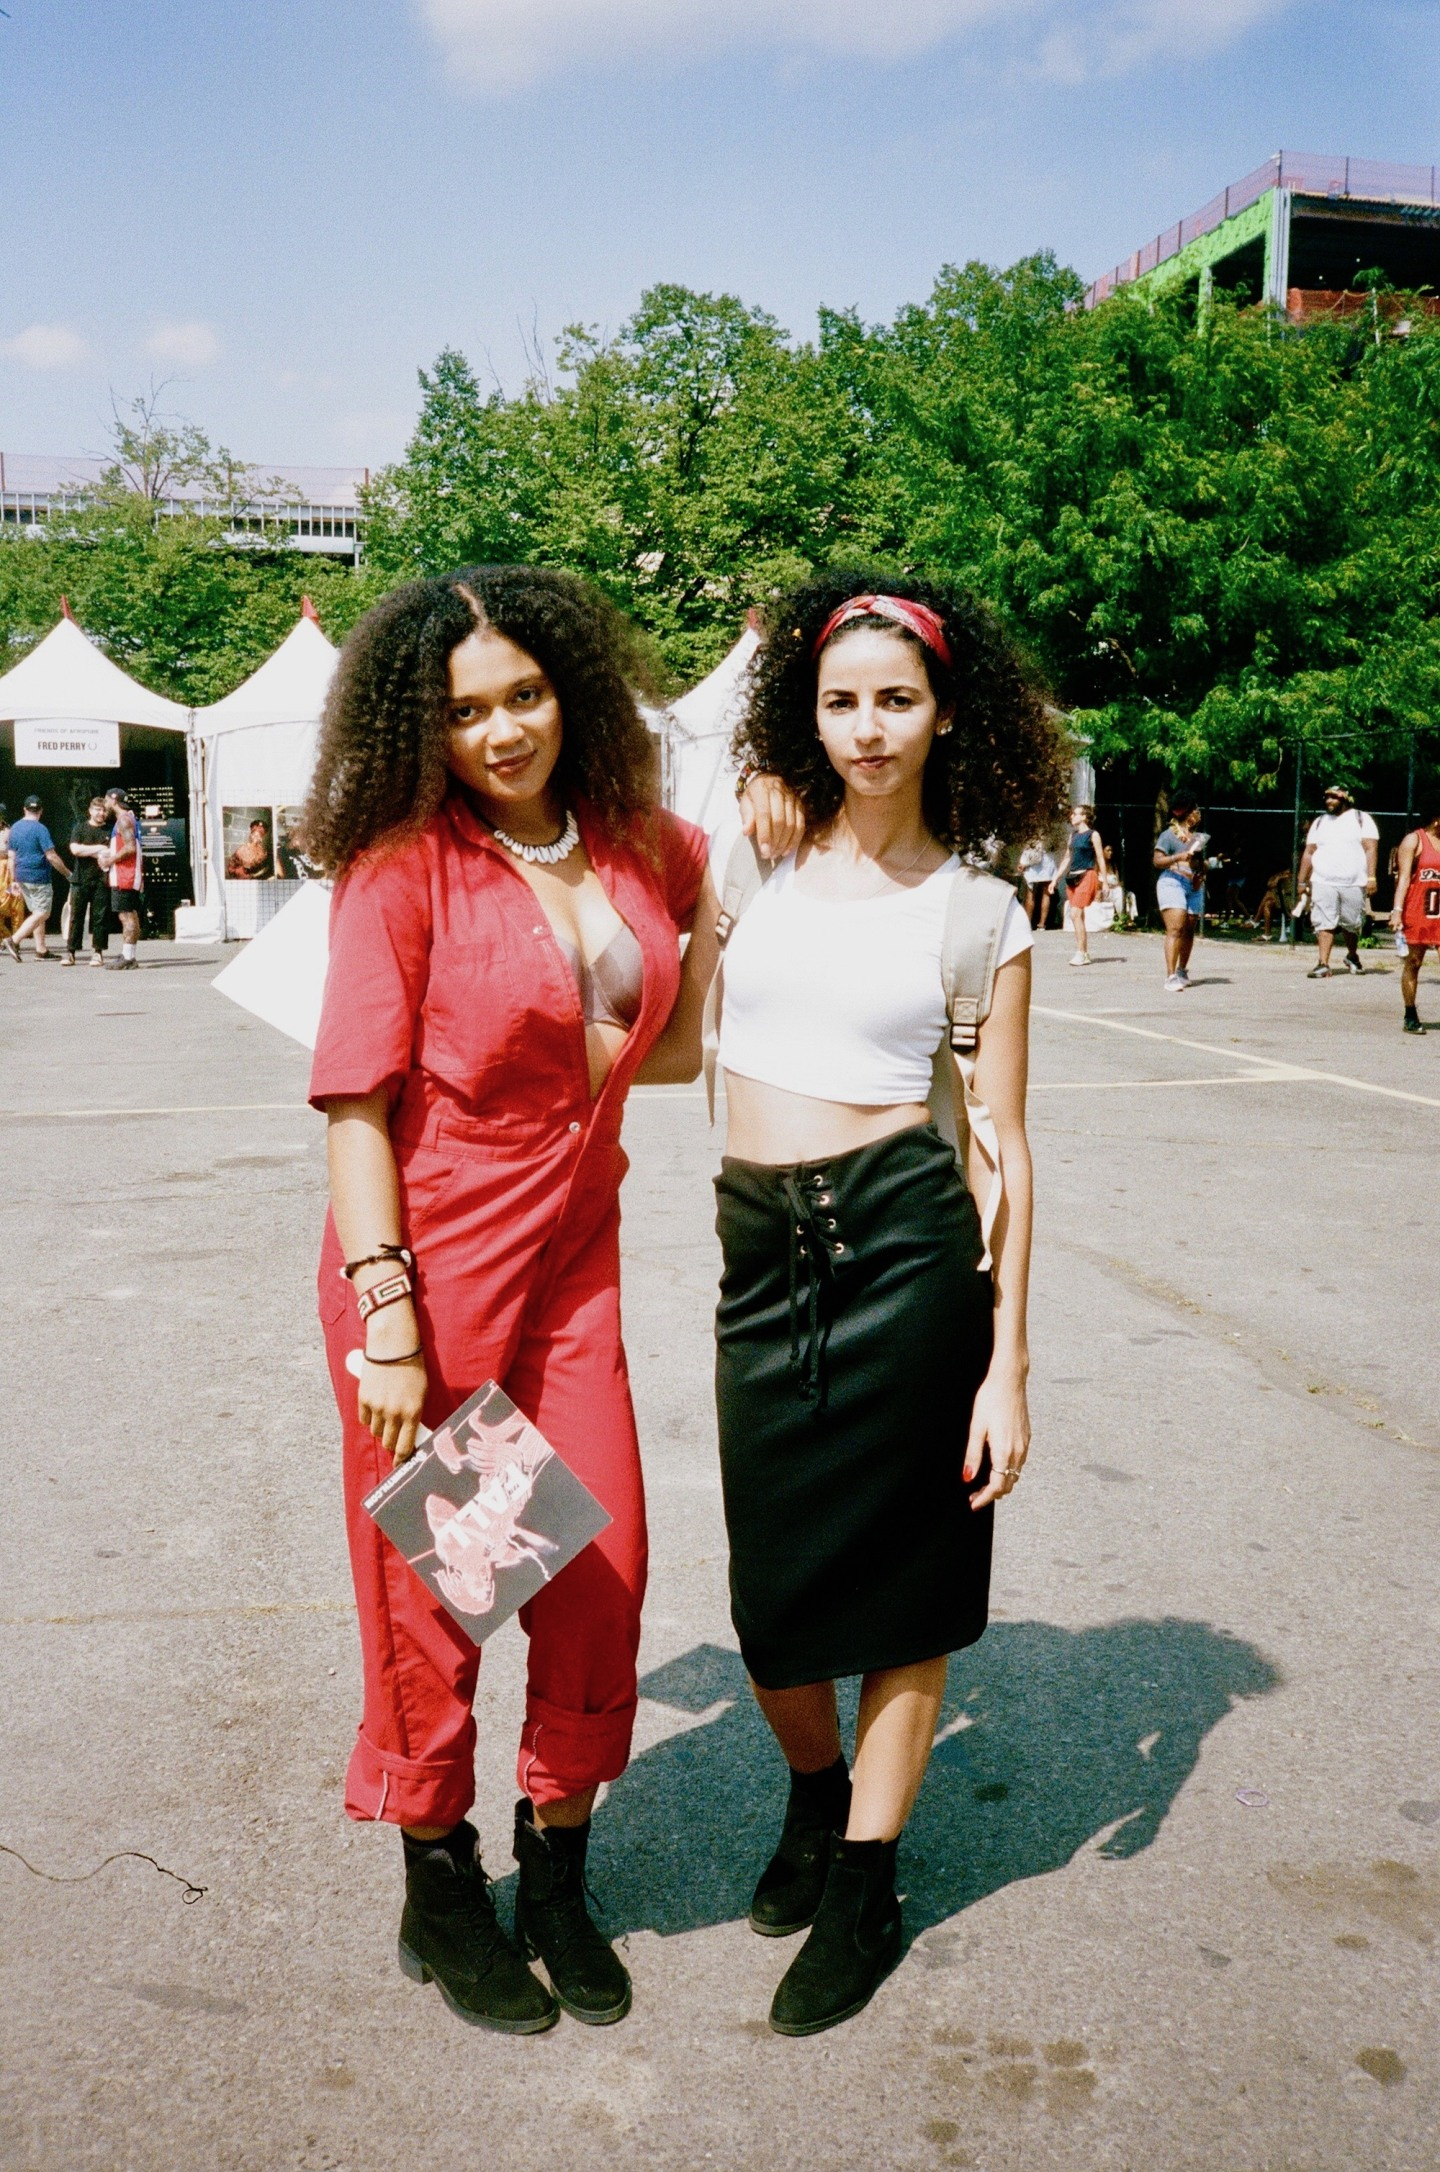 Everyone at Afropunk looked like a damn dream